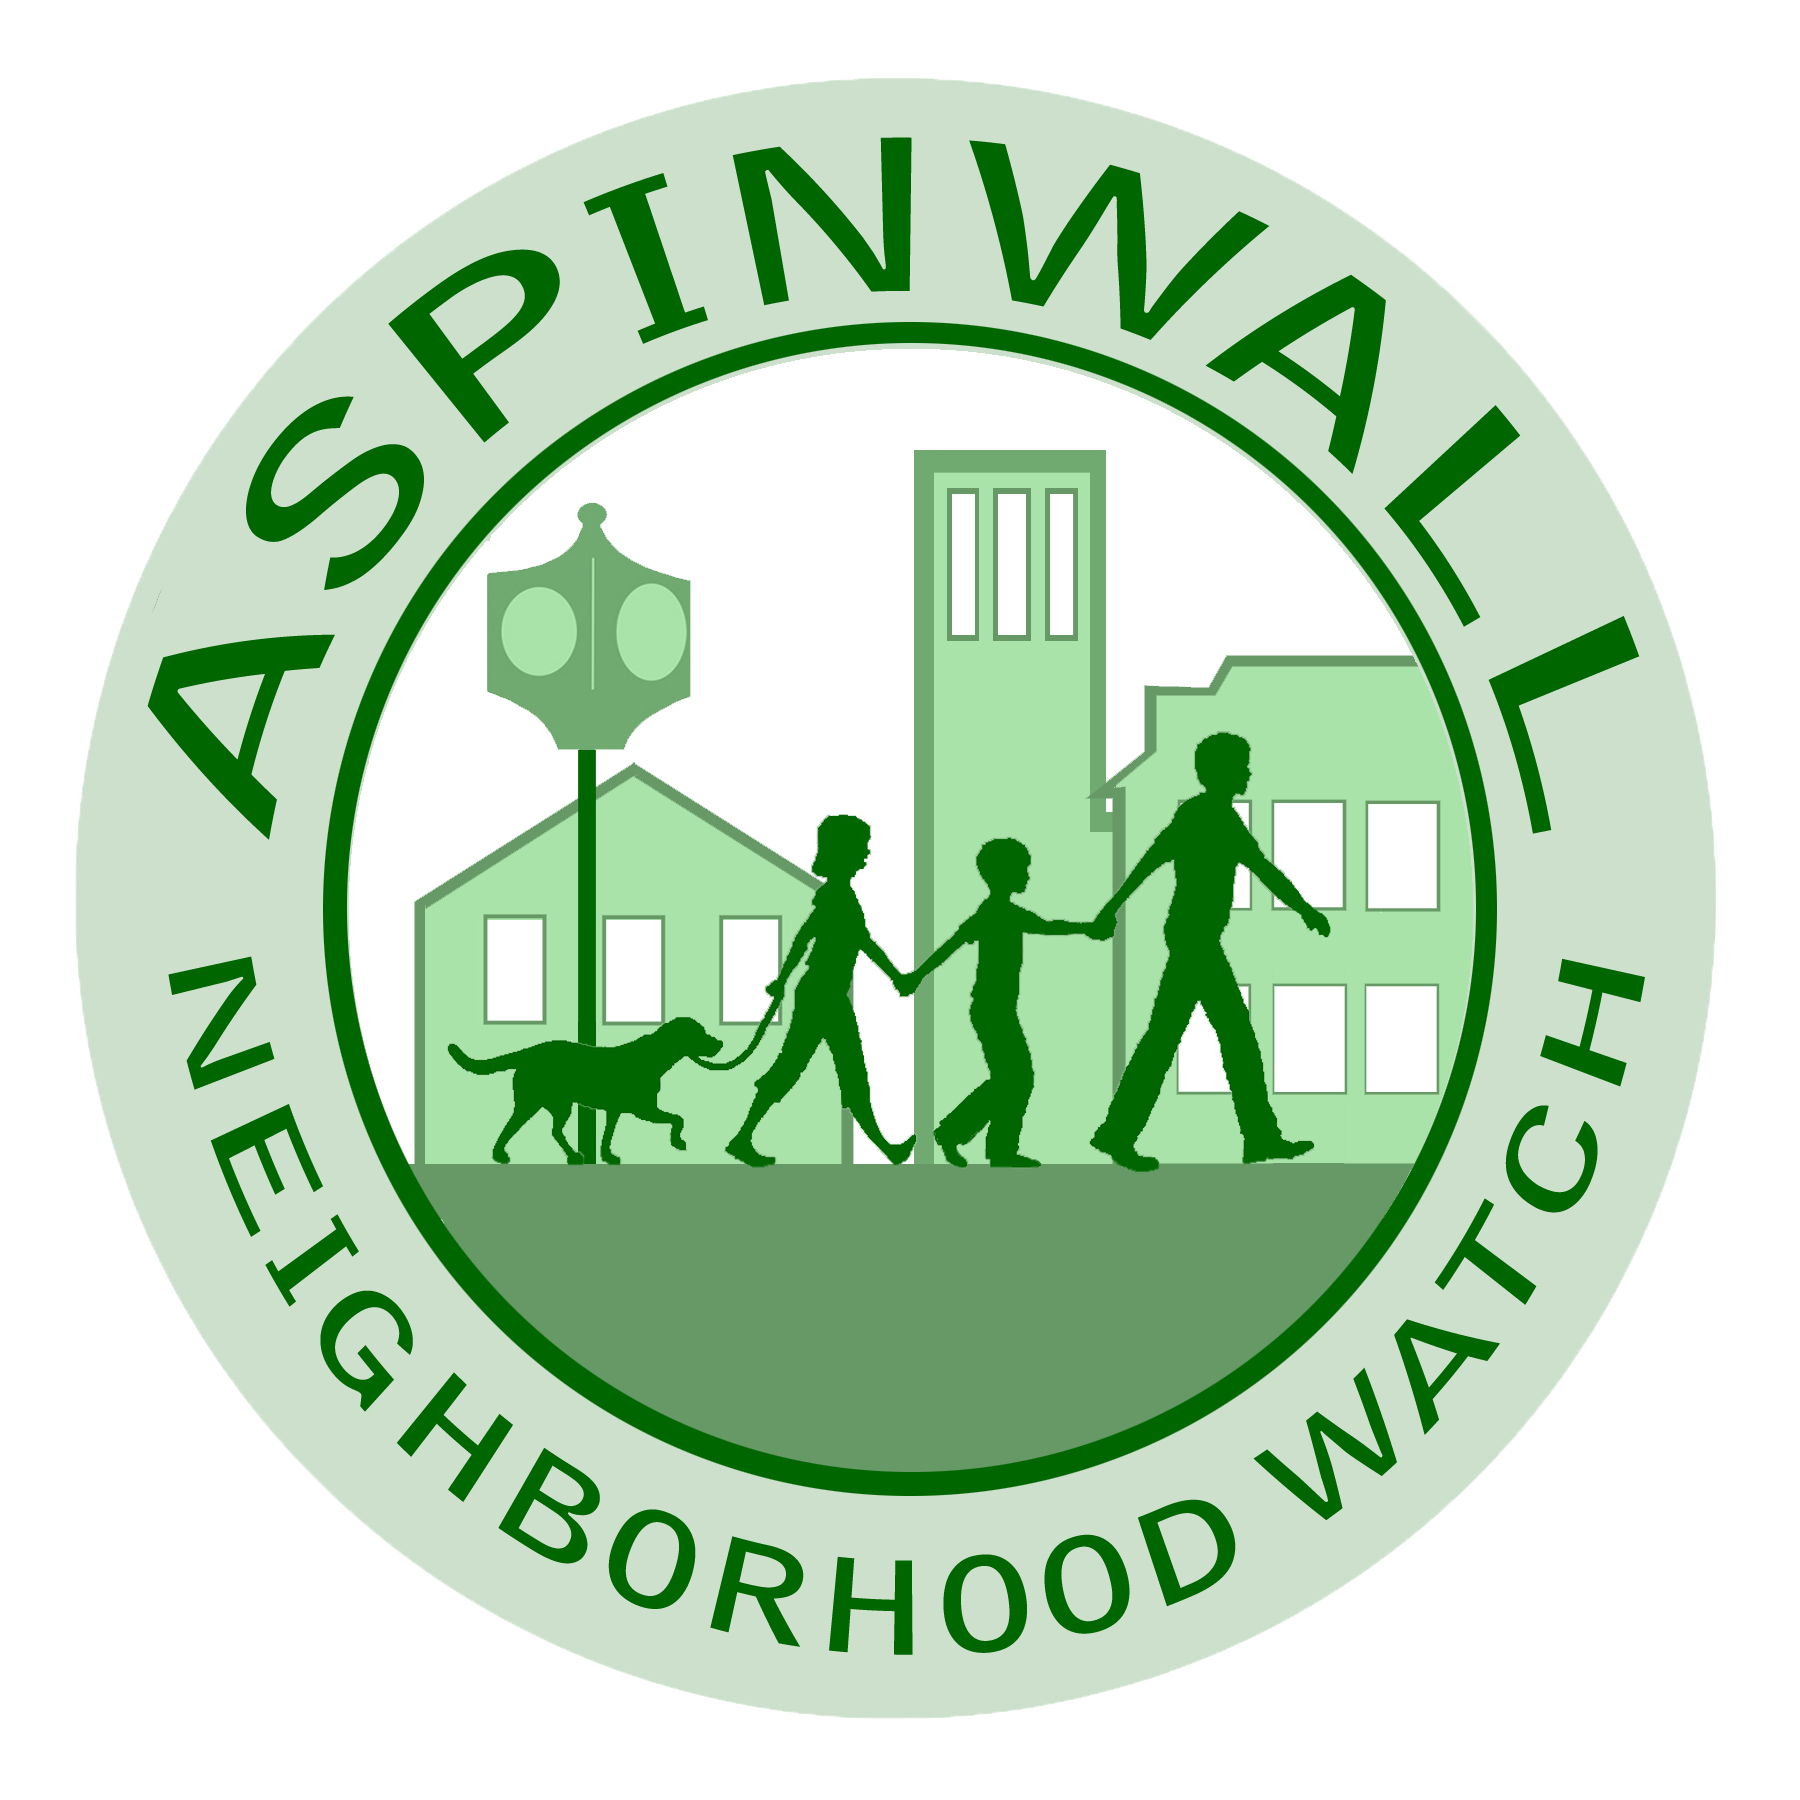 Aspinwall Neighbors